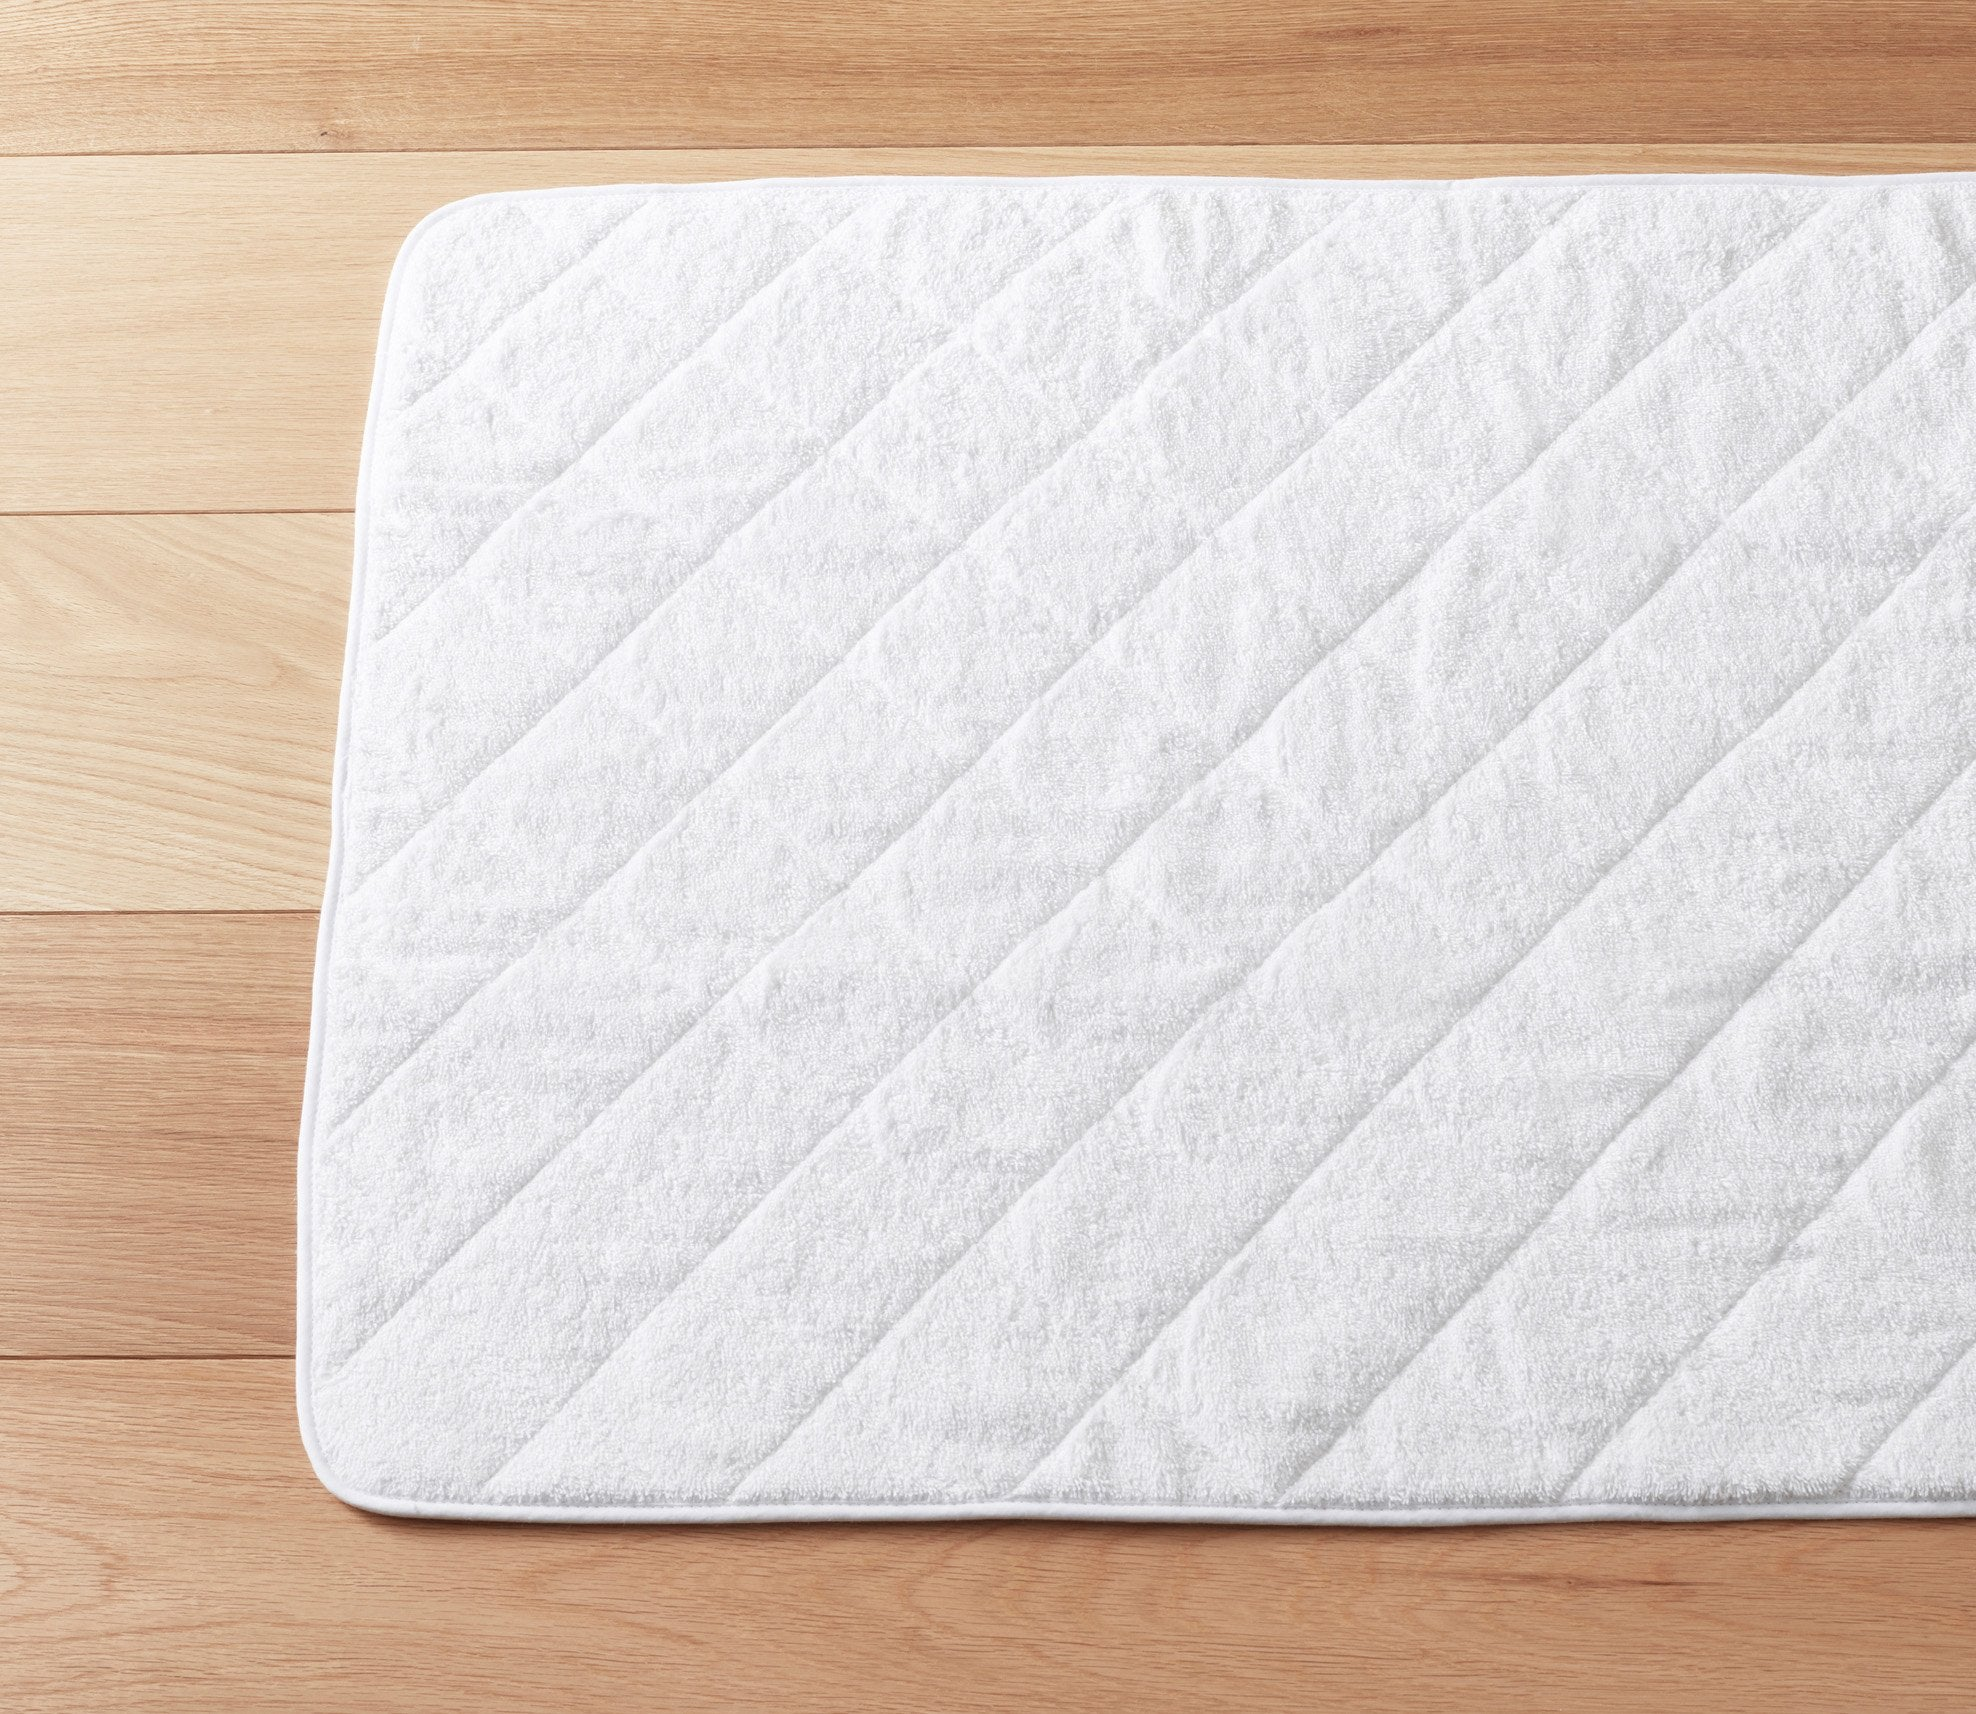 Cairo Quilted Bath Mat White Product Image 1